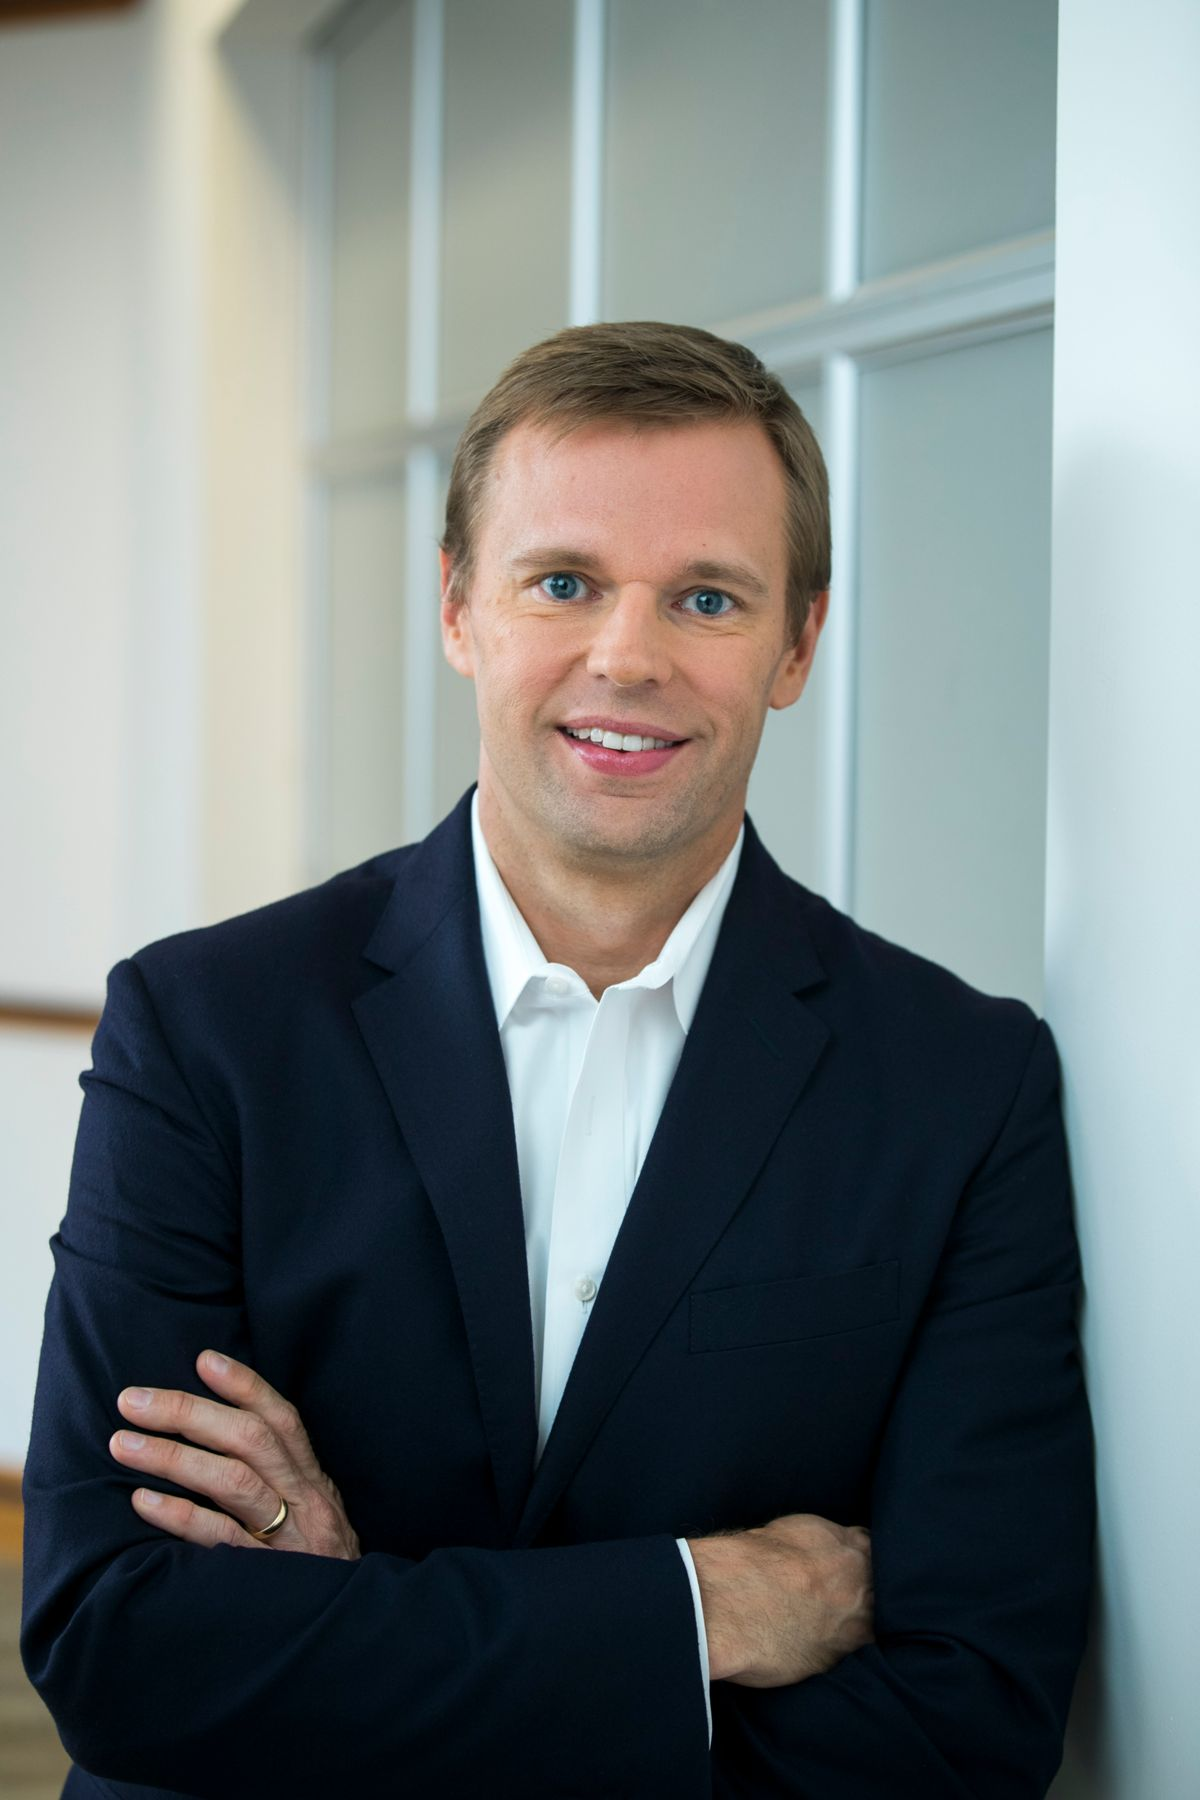 Centrical Expands Leadership Team With Appointment of Eric Presbrey as Chief Revenue Officer, Centrical